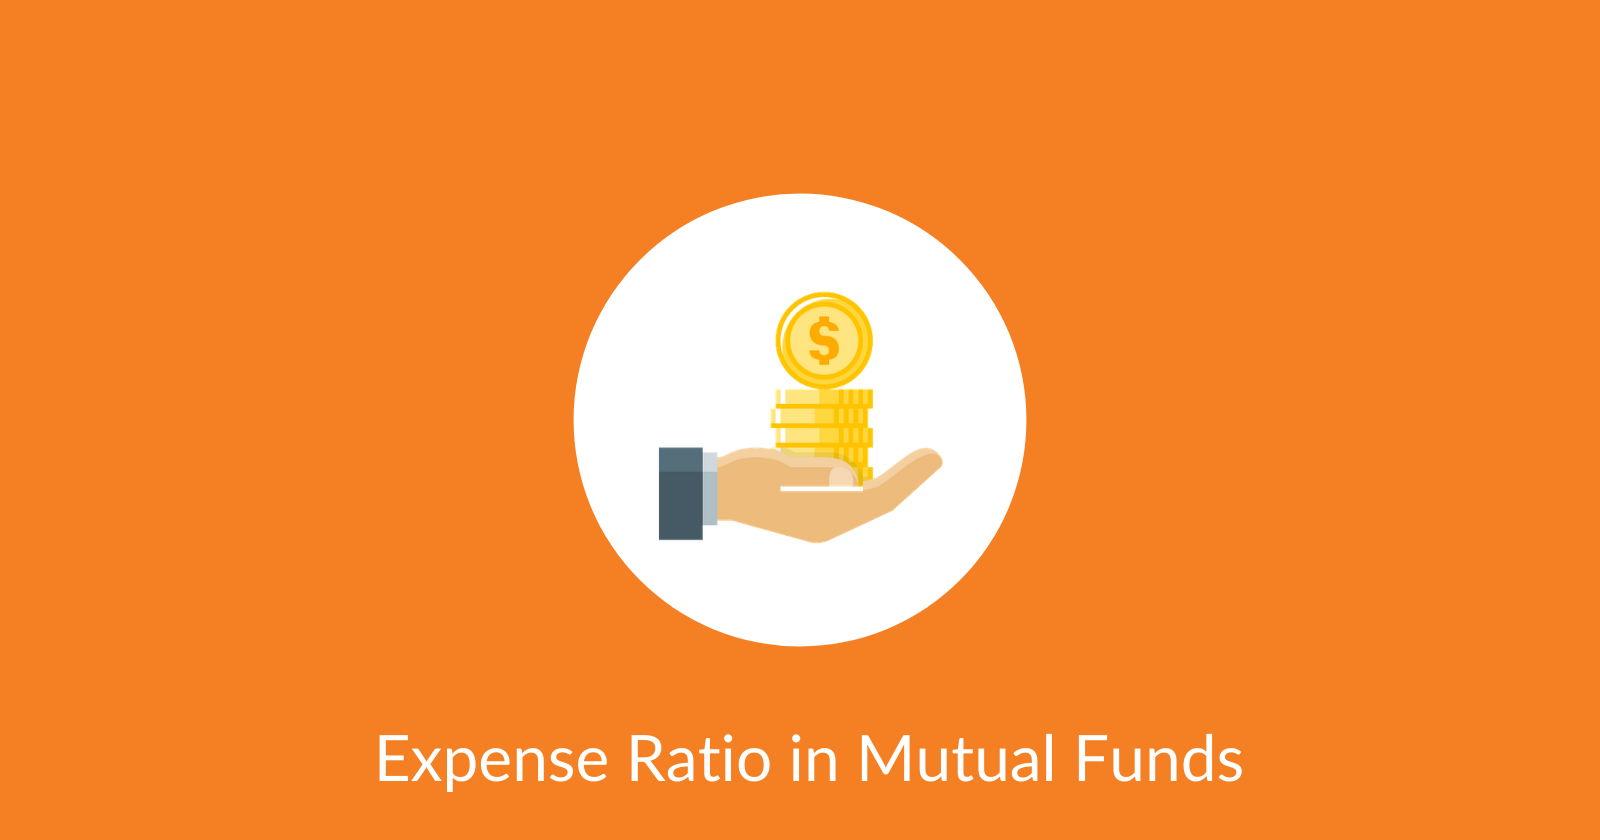 Expense Ratio in Mutual Funds